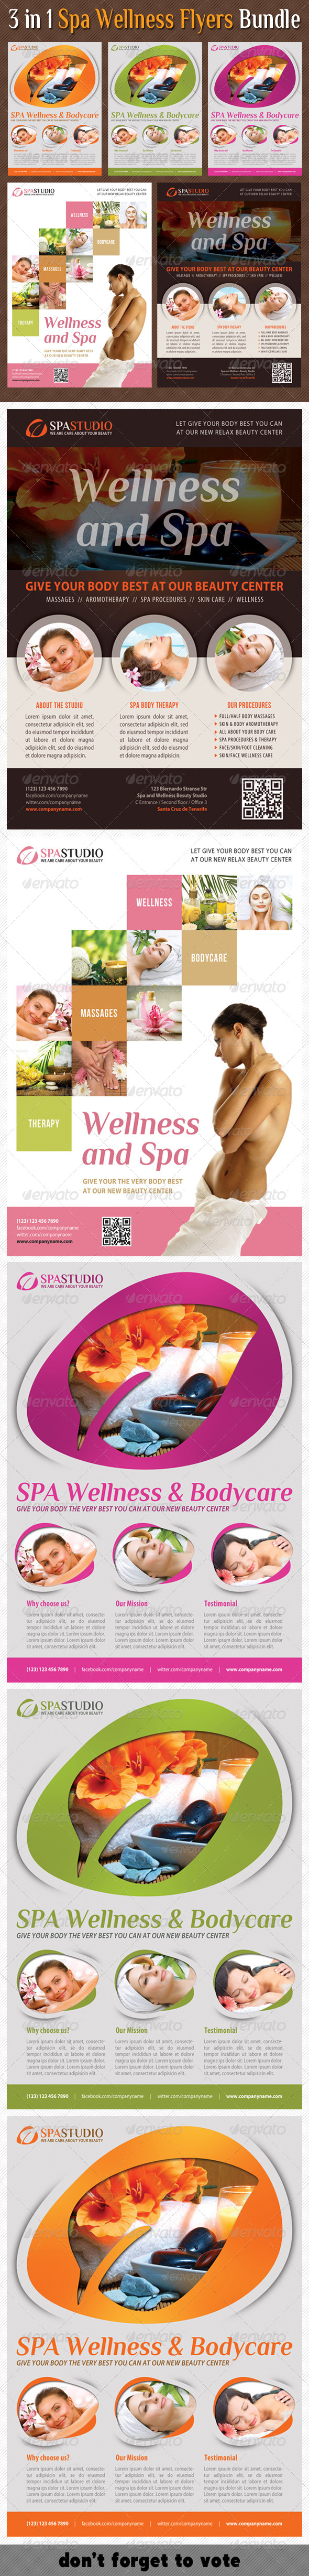 GraphicRiver 3 in 1 Spa Wellness Flyers Bundle 07 7707760